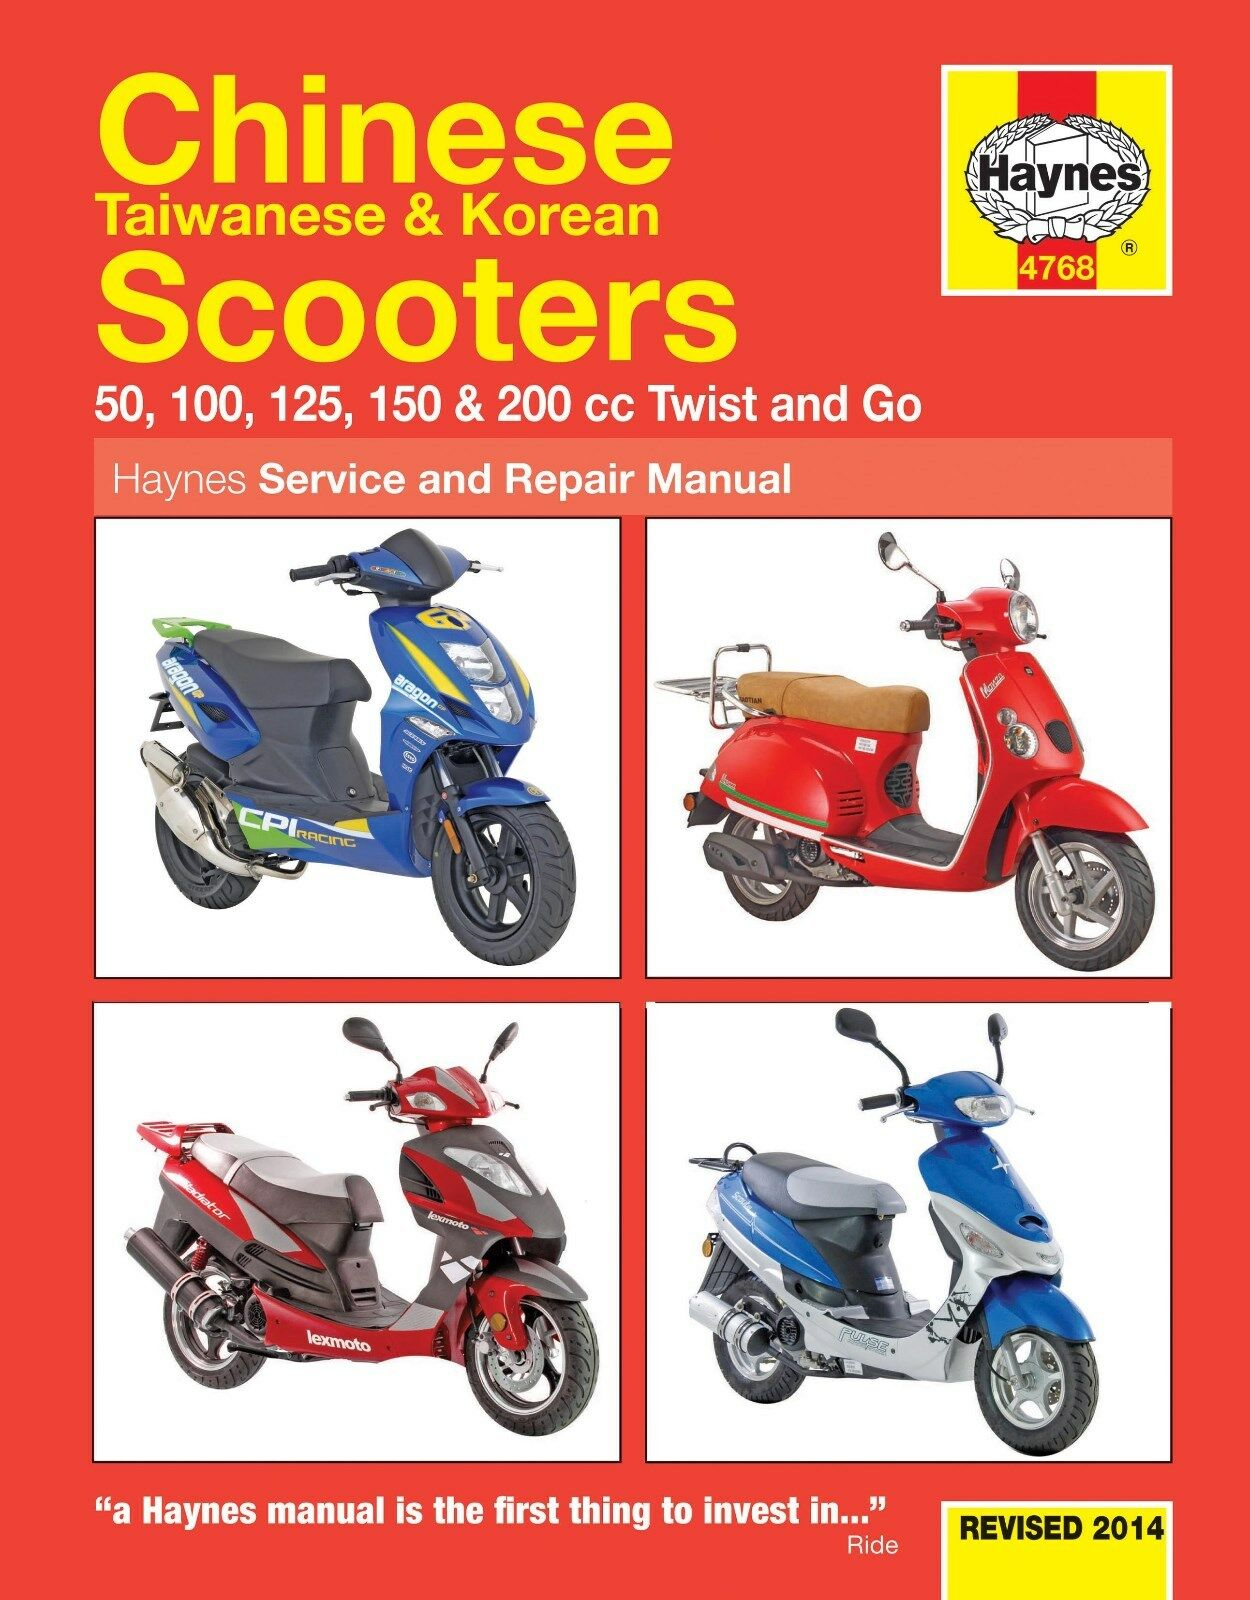 4768 Haynes Chinese, Taiwanese & Korean Scooters 50cc - 200cc Workshop  Manual